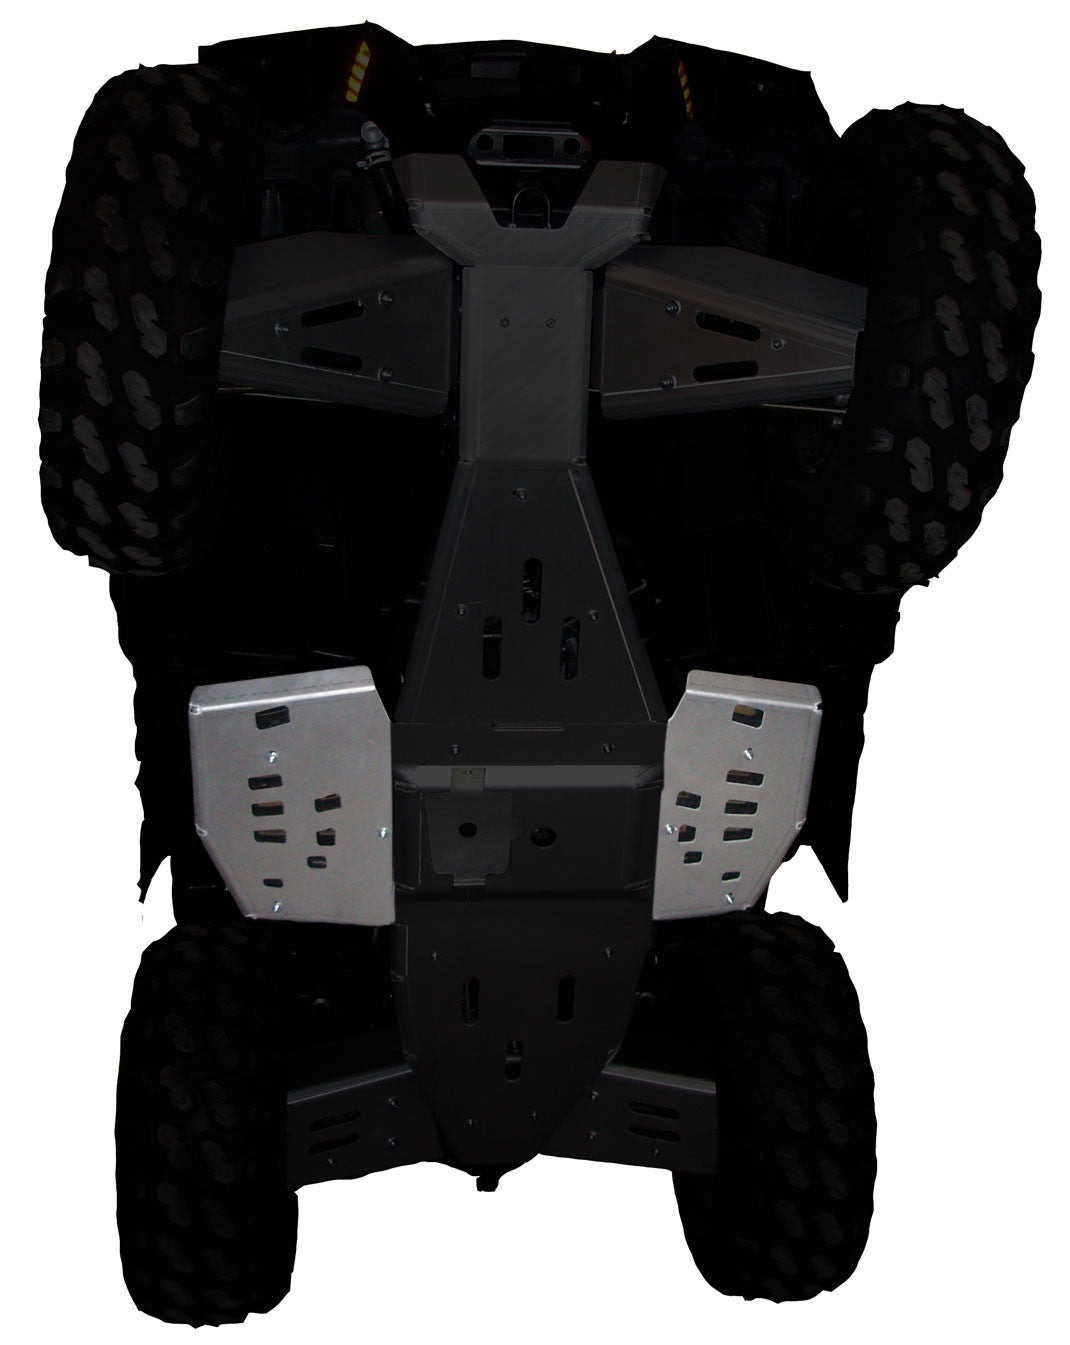 2-Piece Floor Board Skid Plate Set, Polaris Scrambler 1000